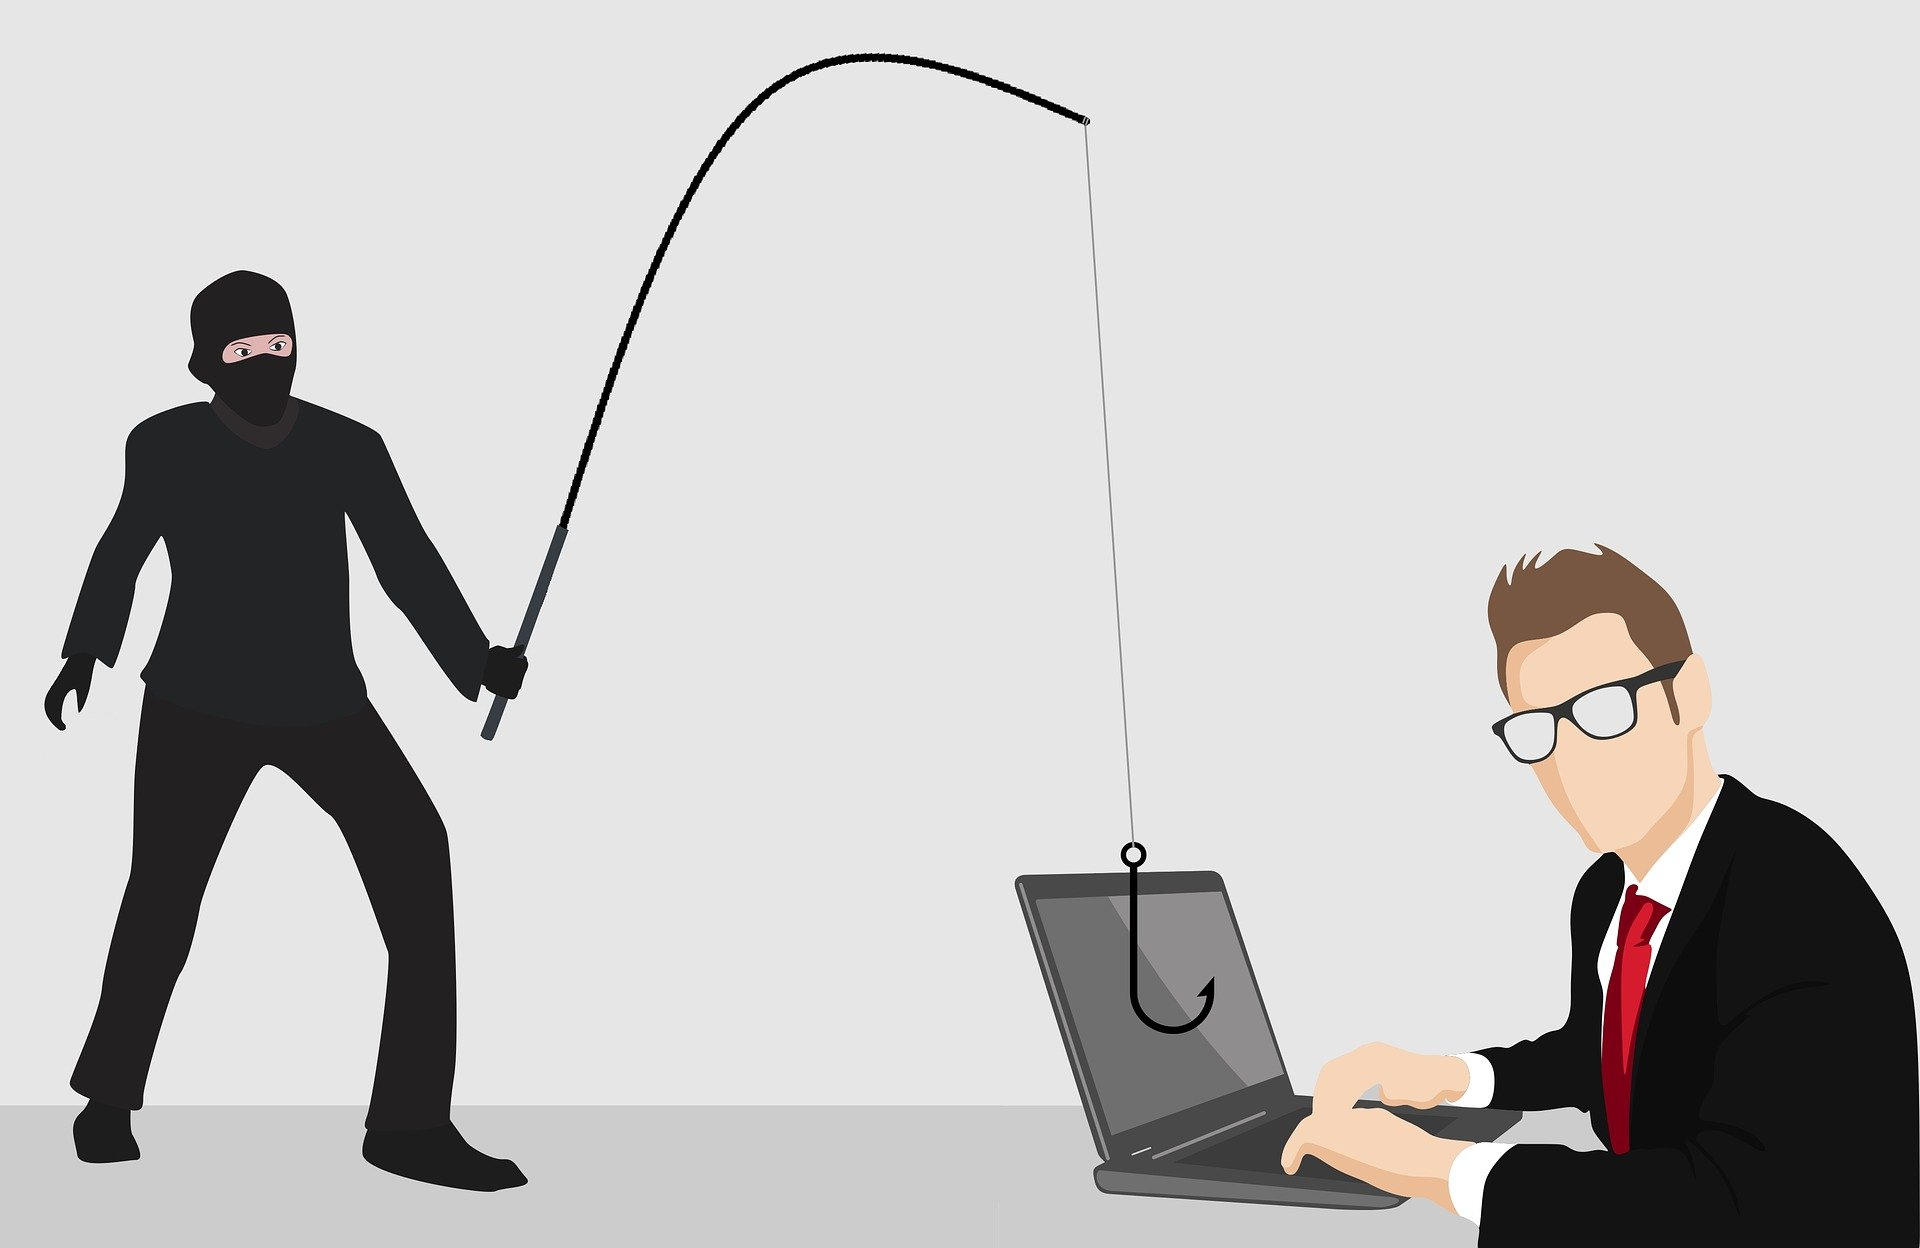 Image shows someone in black with a fishing line. The end of the line is draped over a computer where a man sits dressed in a suit. It is an illustration.